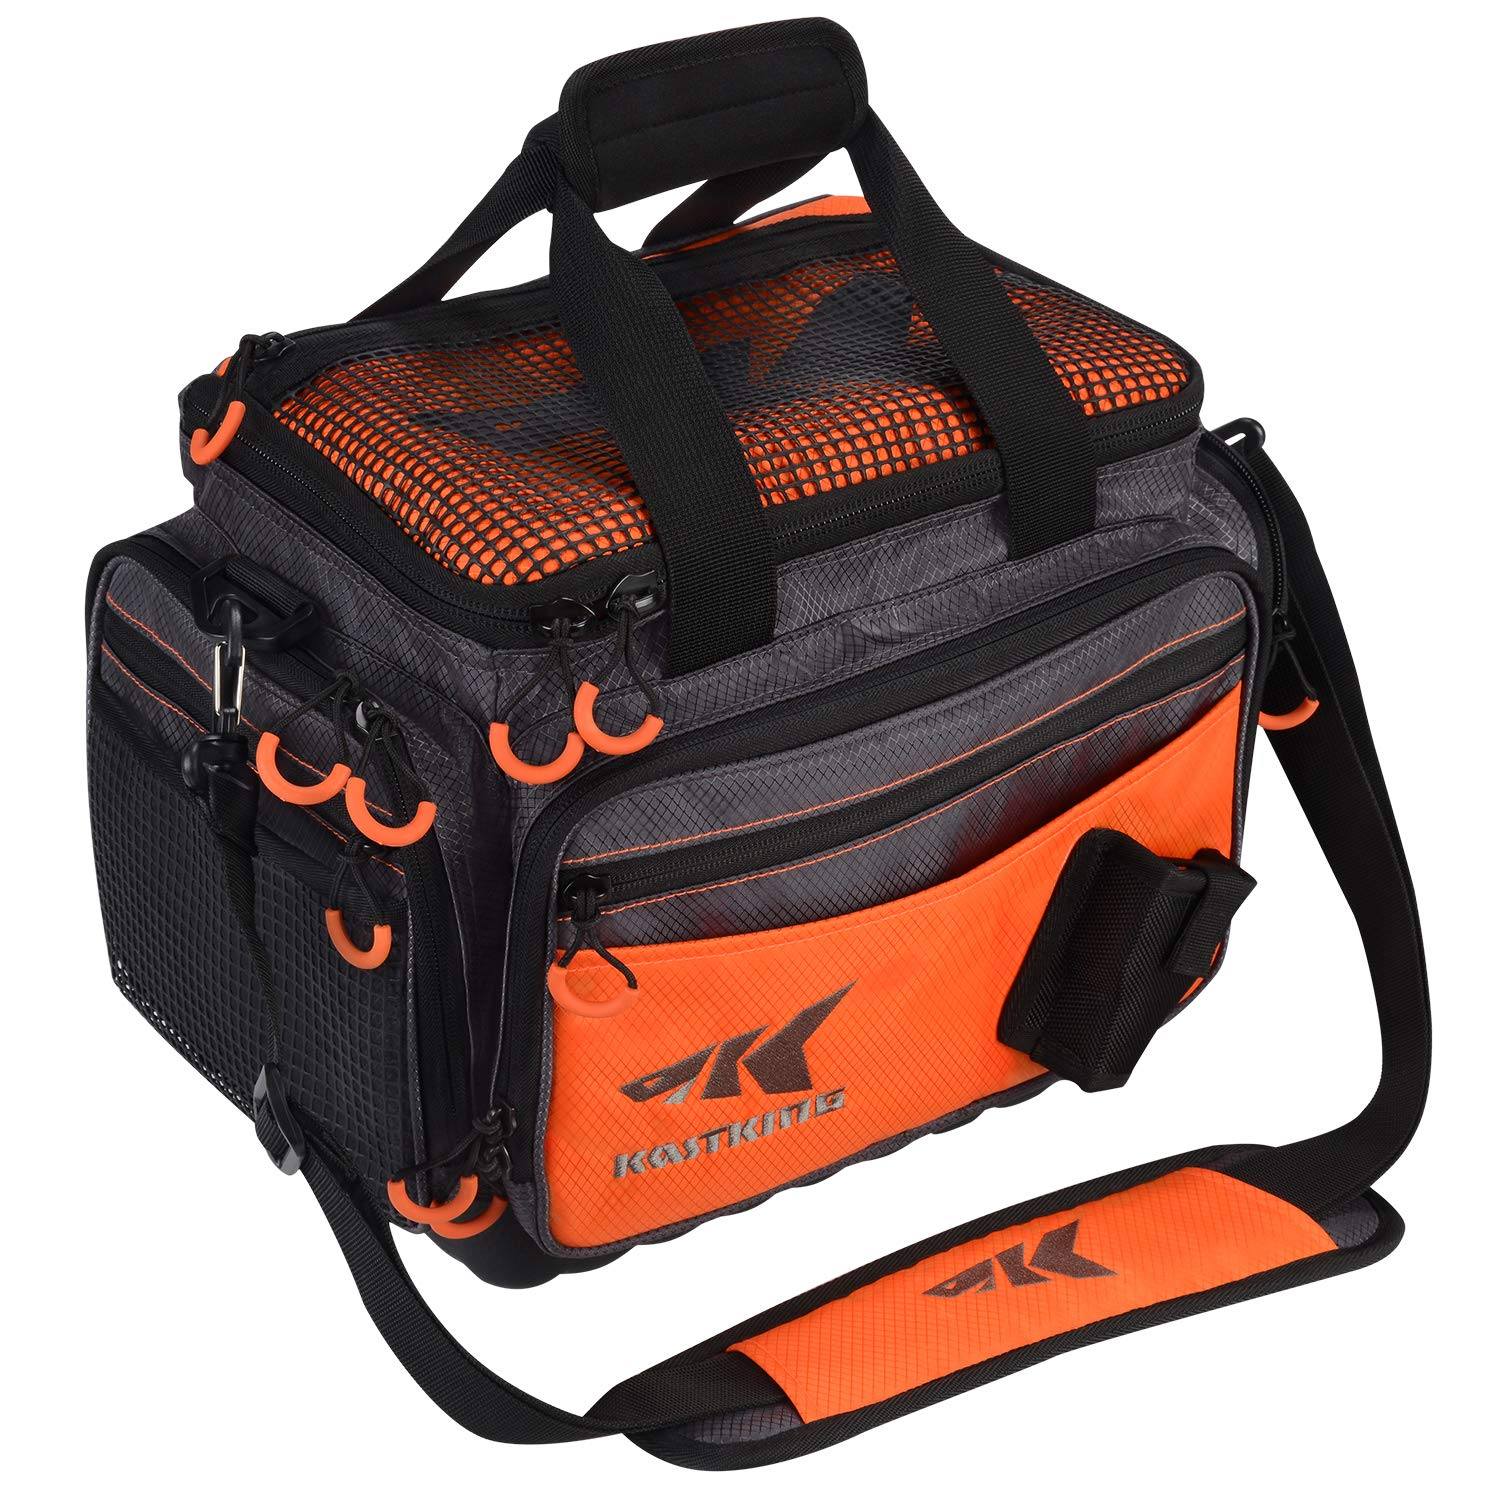 KastKing Fishing Tackle Bags - Large Saltwater Resistant Fishing Bags -  Fishing Gear Bags - Waterproof Fishing Tackle Storage Bags - 3600 3700  Tackle